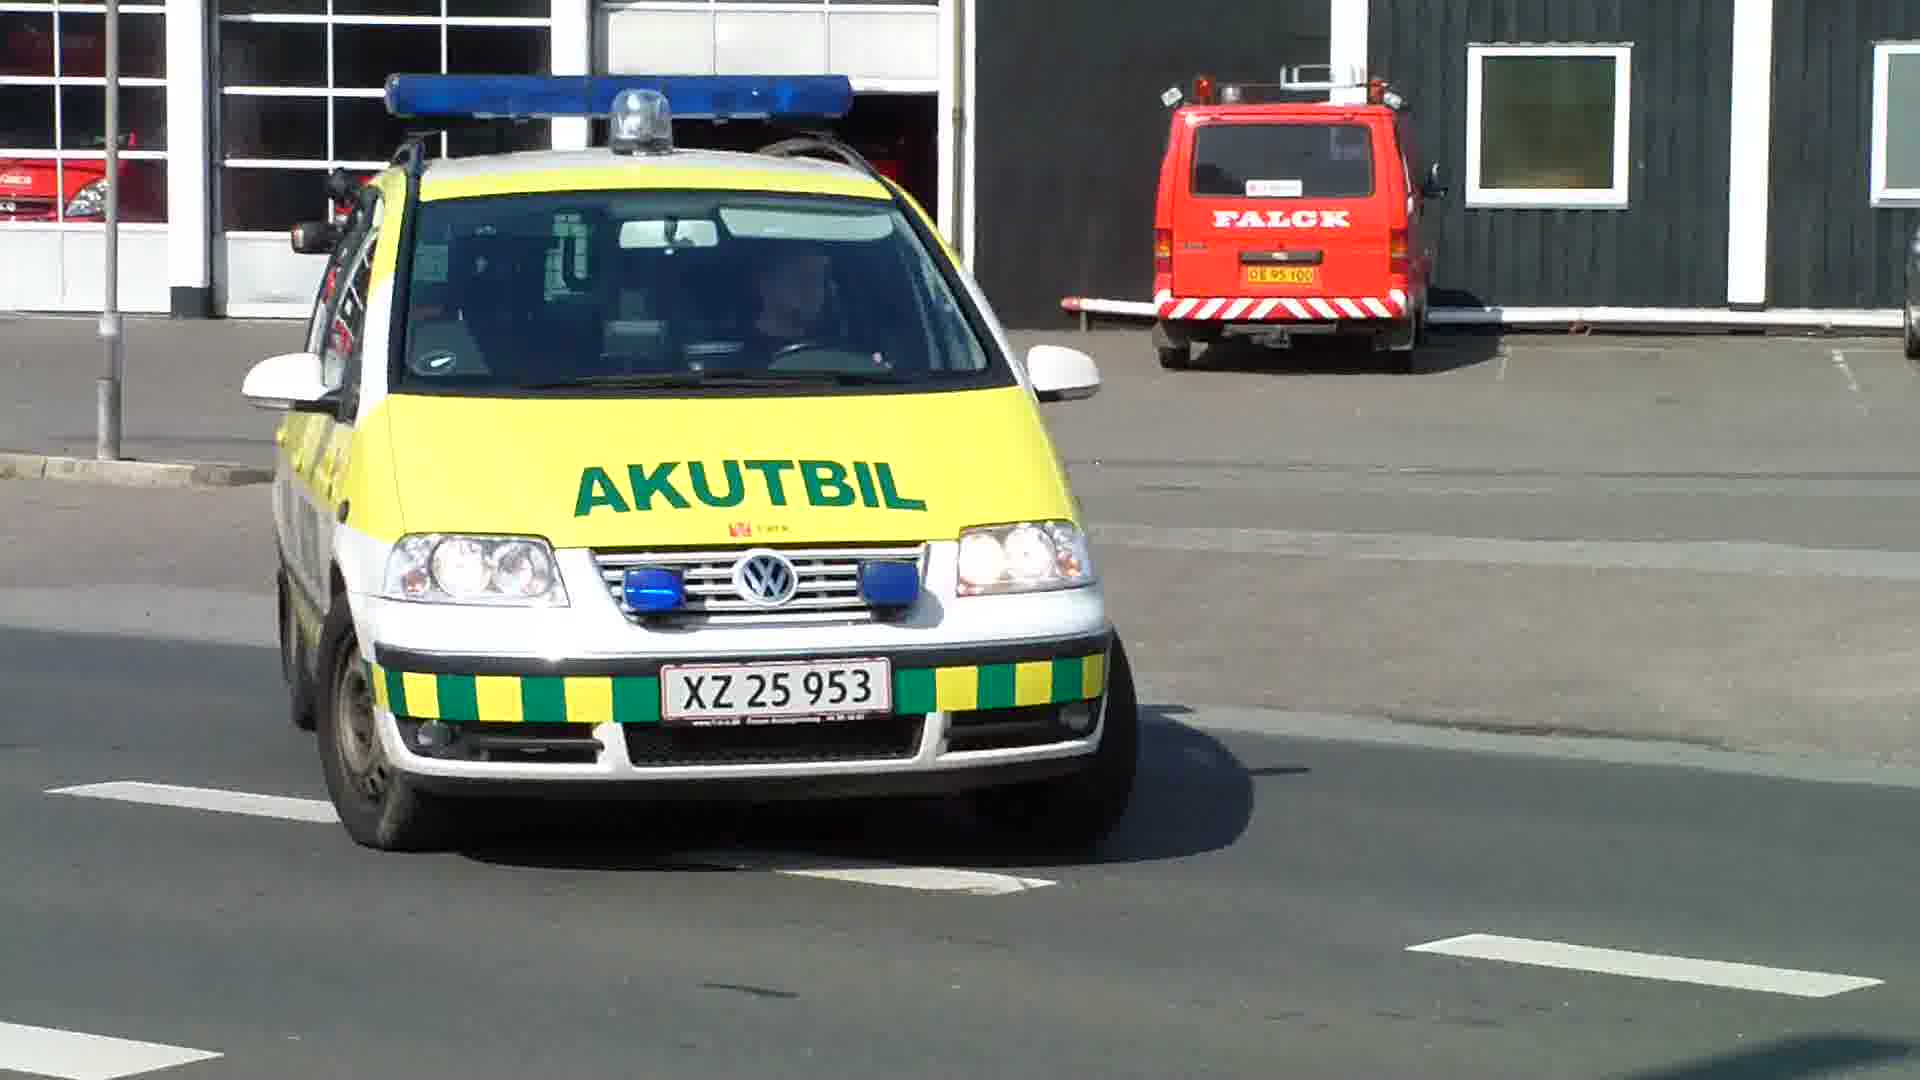 Ambulance + Akutbil Falck Rescue station Holstebro